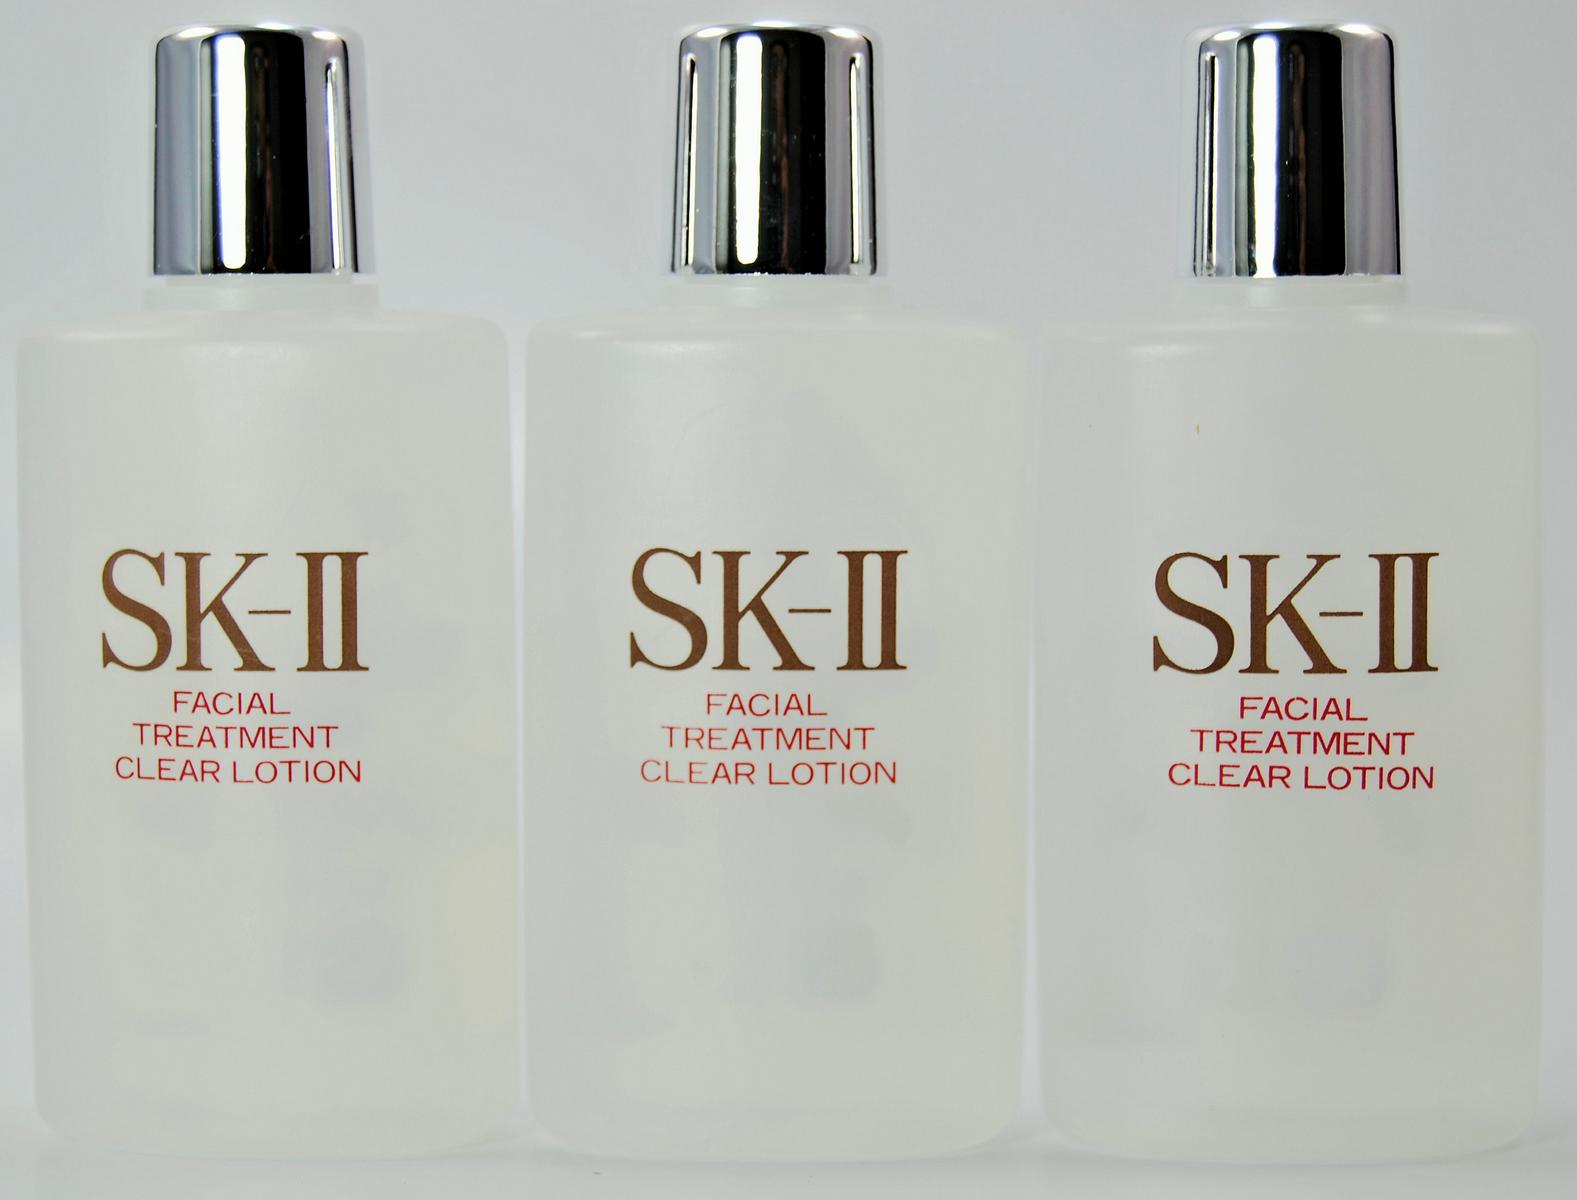 Max SK2 facial treatment clear lotion 40 ml 3 PCs set sample mini size